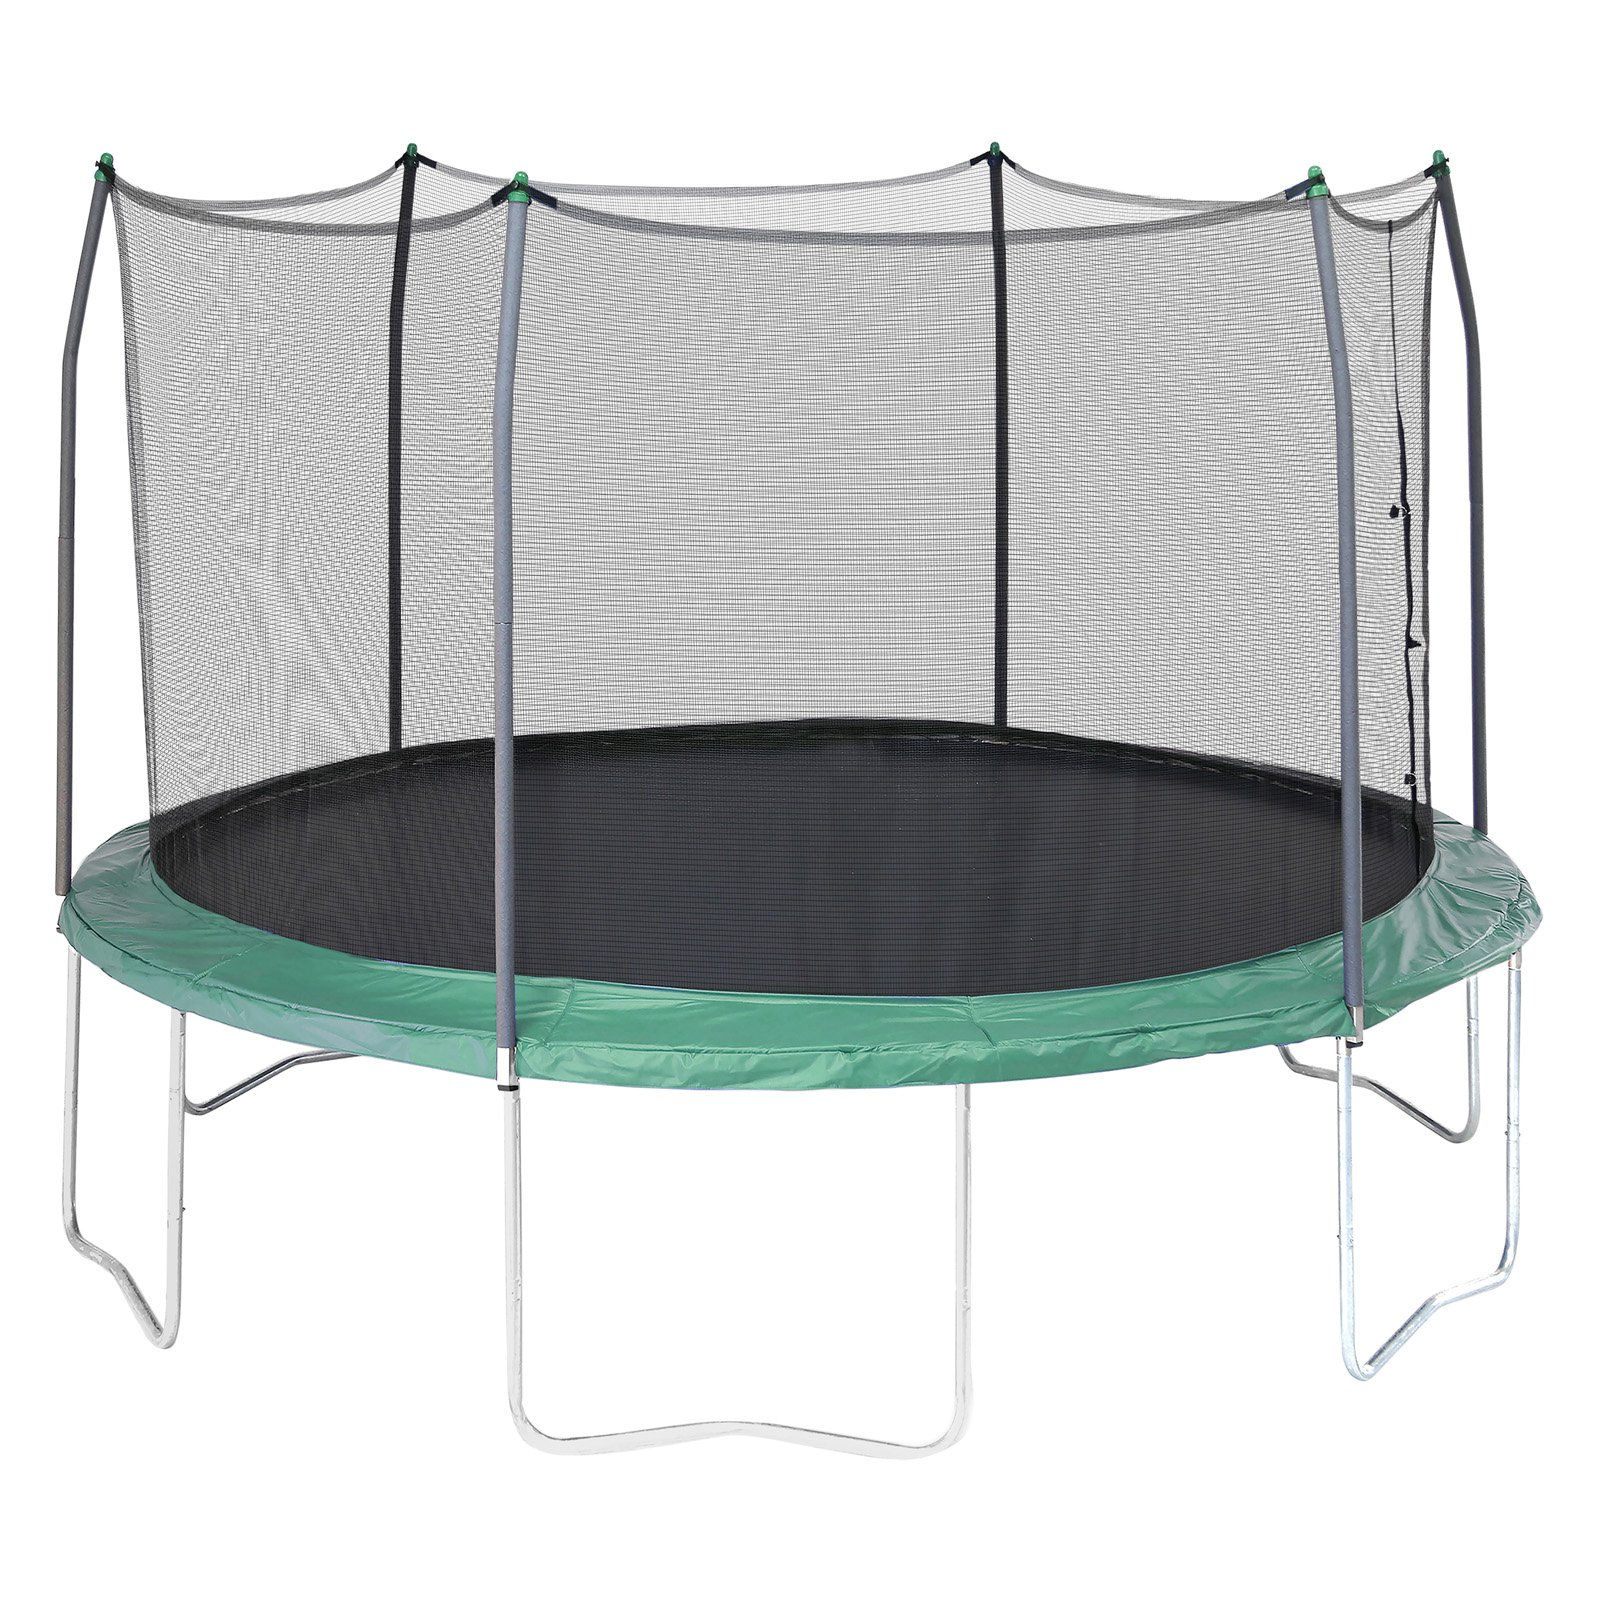 konxa Skywalker Holdings Llc Skywalker 12 - ft. Round Trampoline With